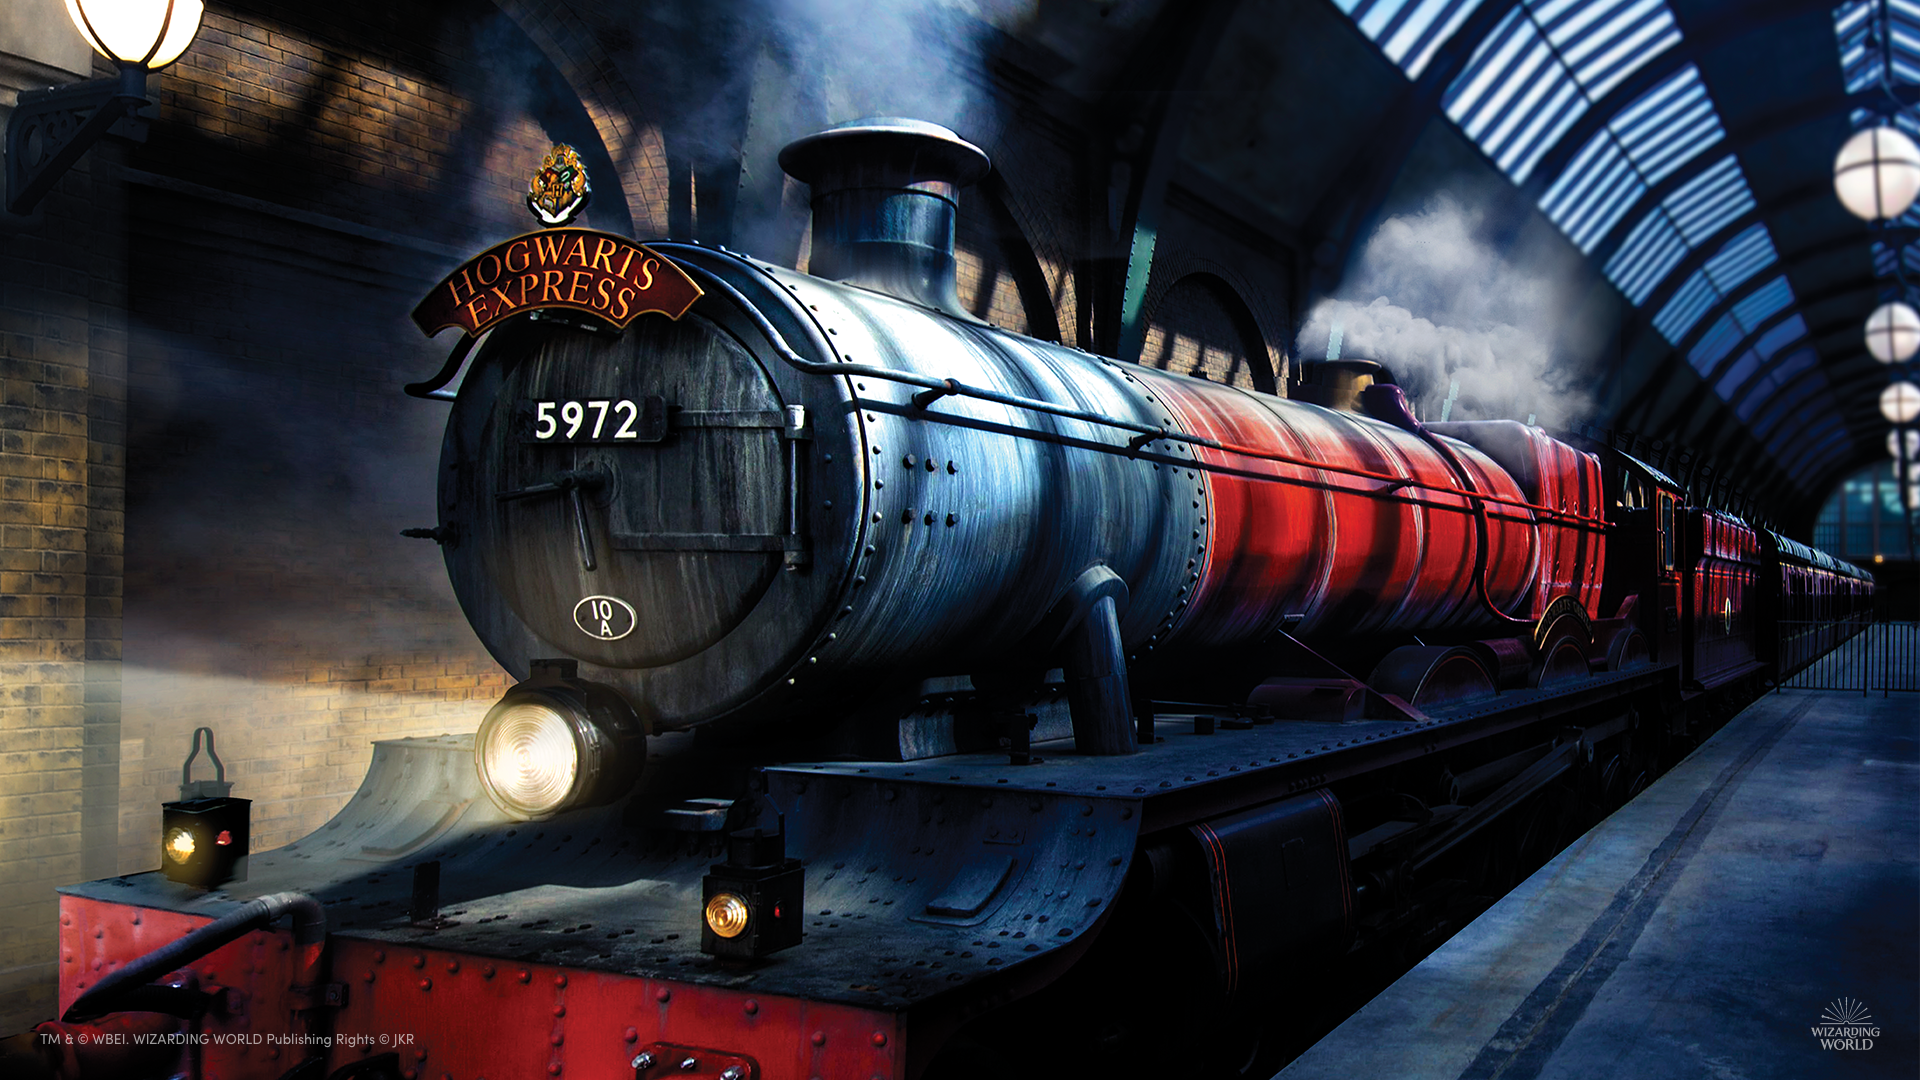 wb-platform934-background